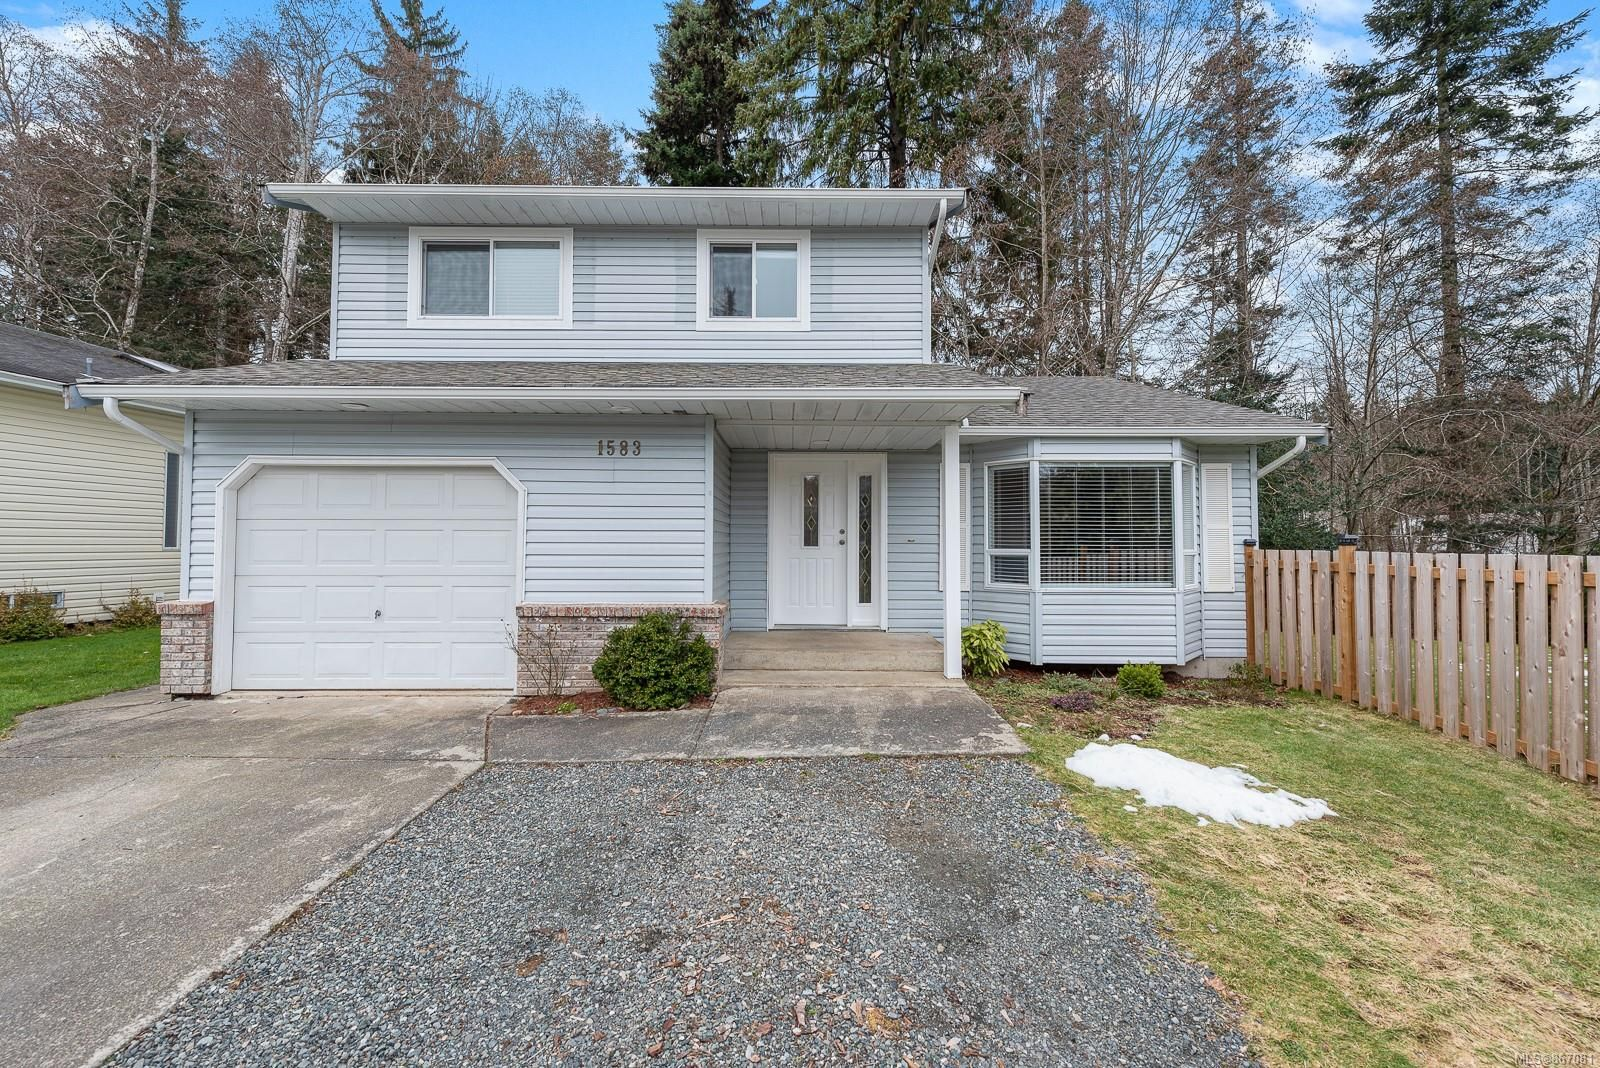 Main Photo: 1583 Hobson Ave in : CV Courtenay East House for sale (Comox Valley)  : MLS®# 867081